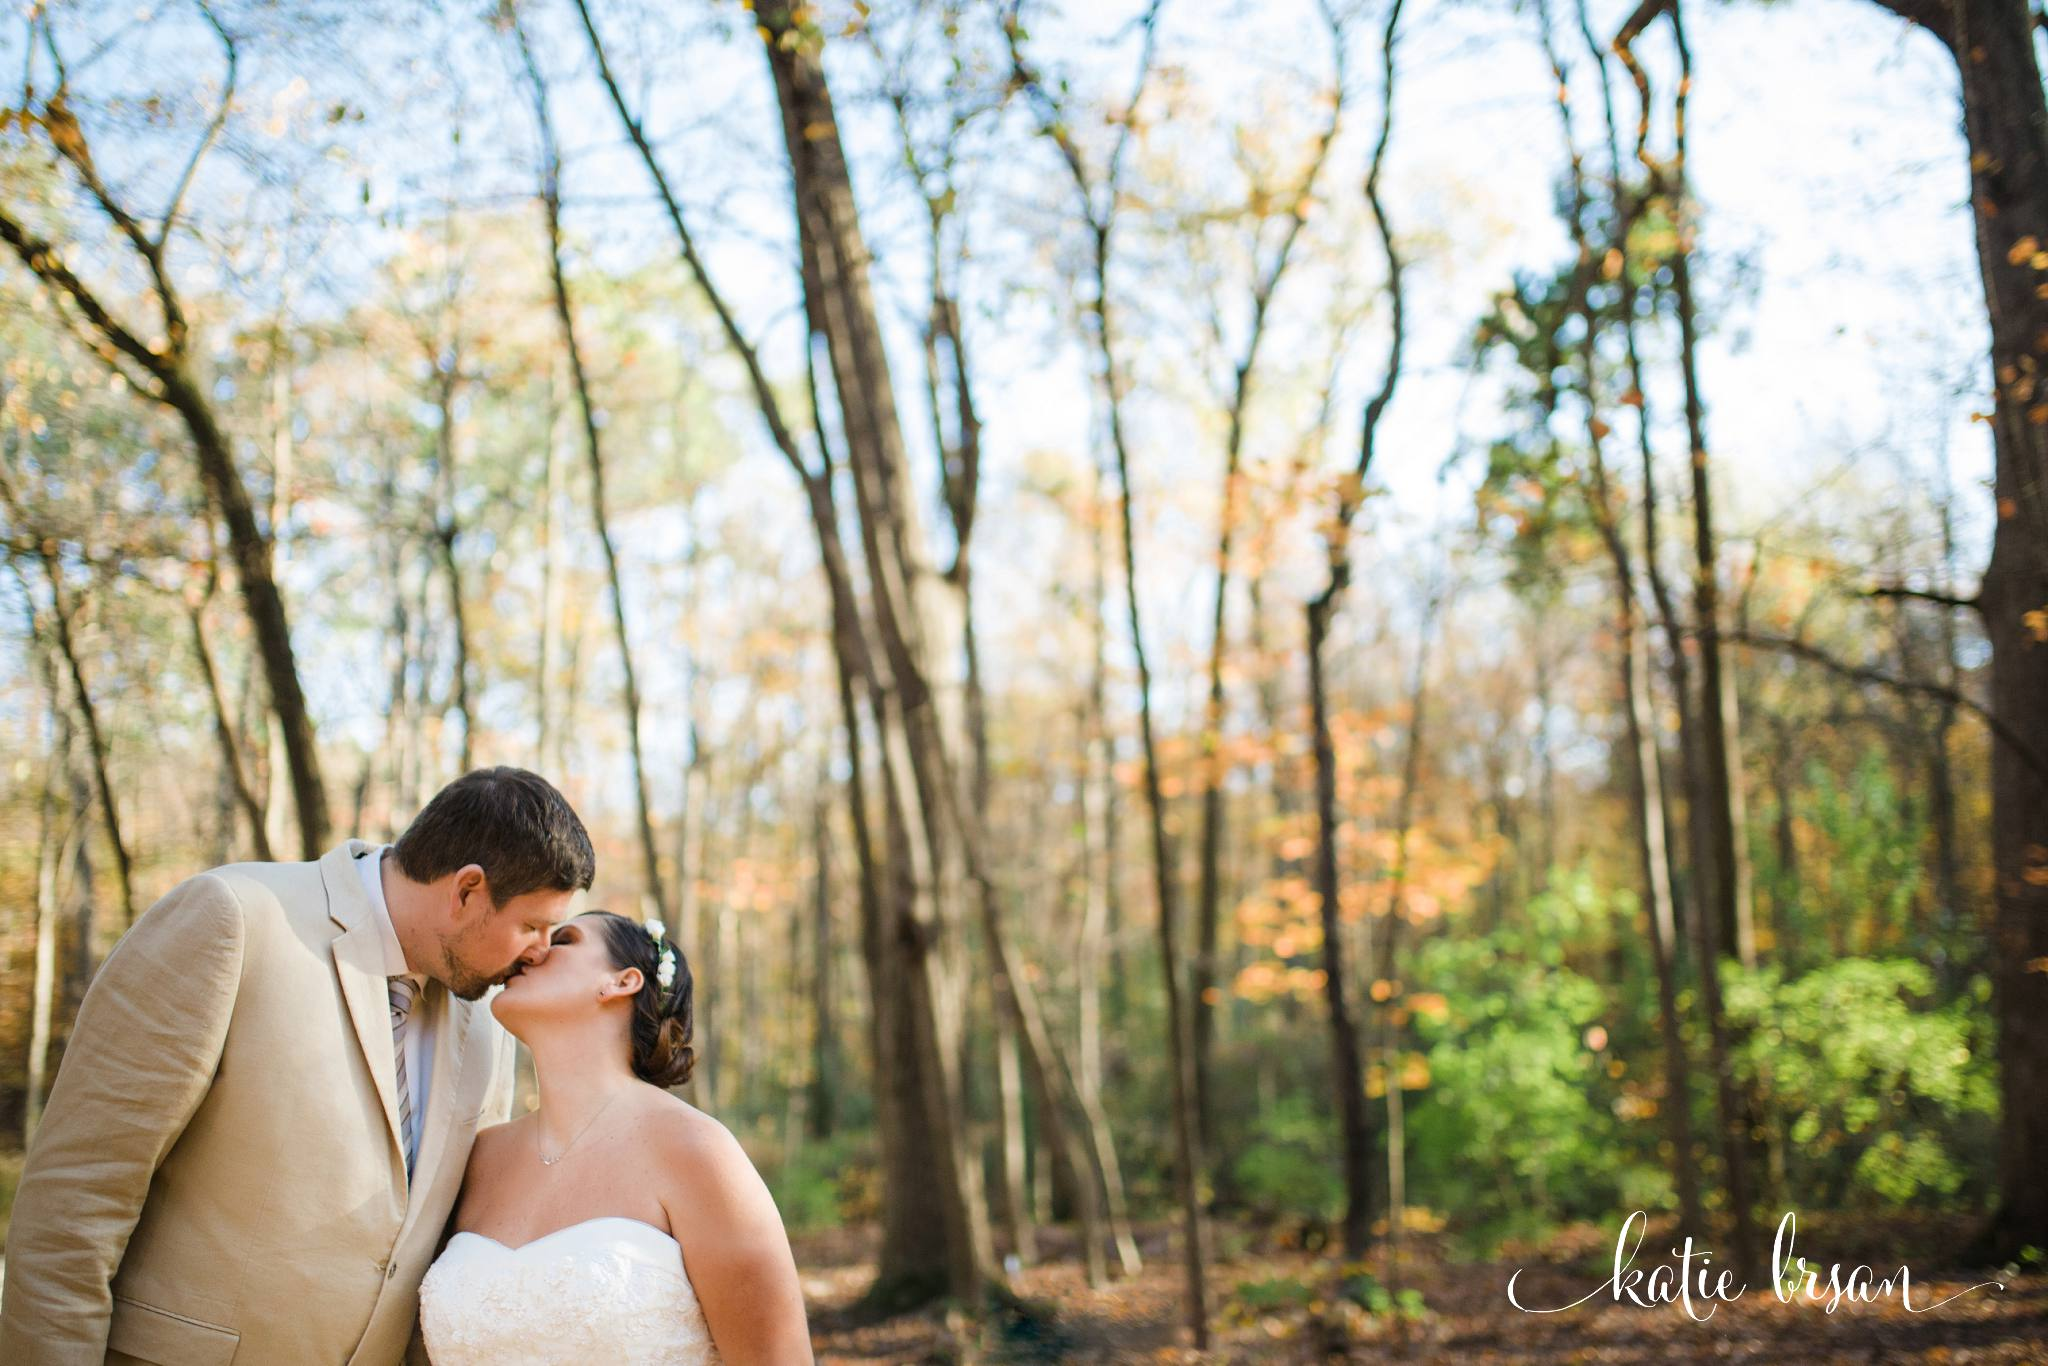 DownersGrove_BackyardWedding_GilbertsPark_1071.jpg